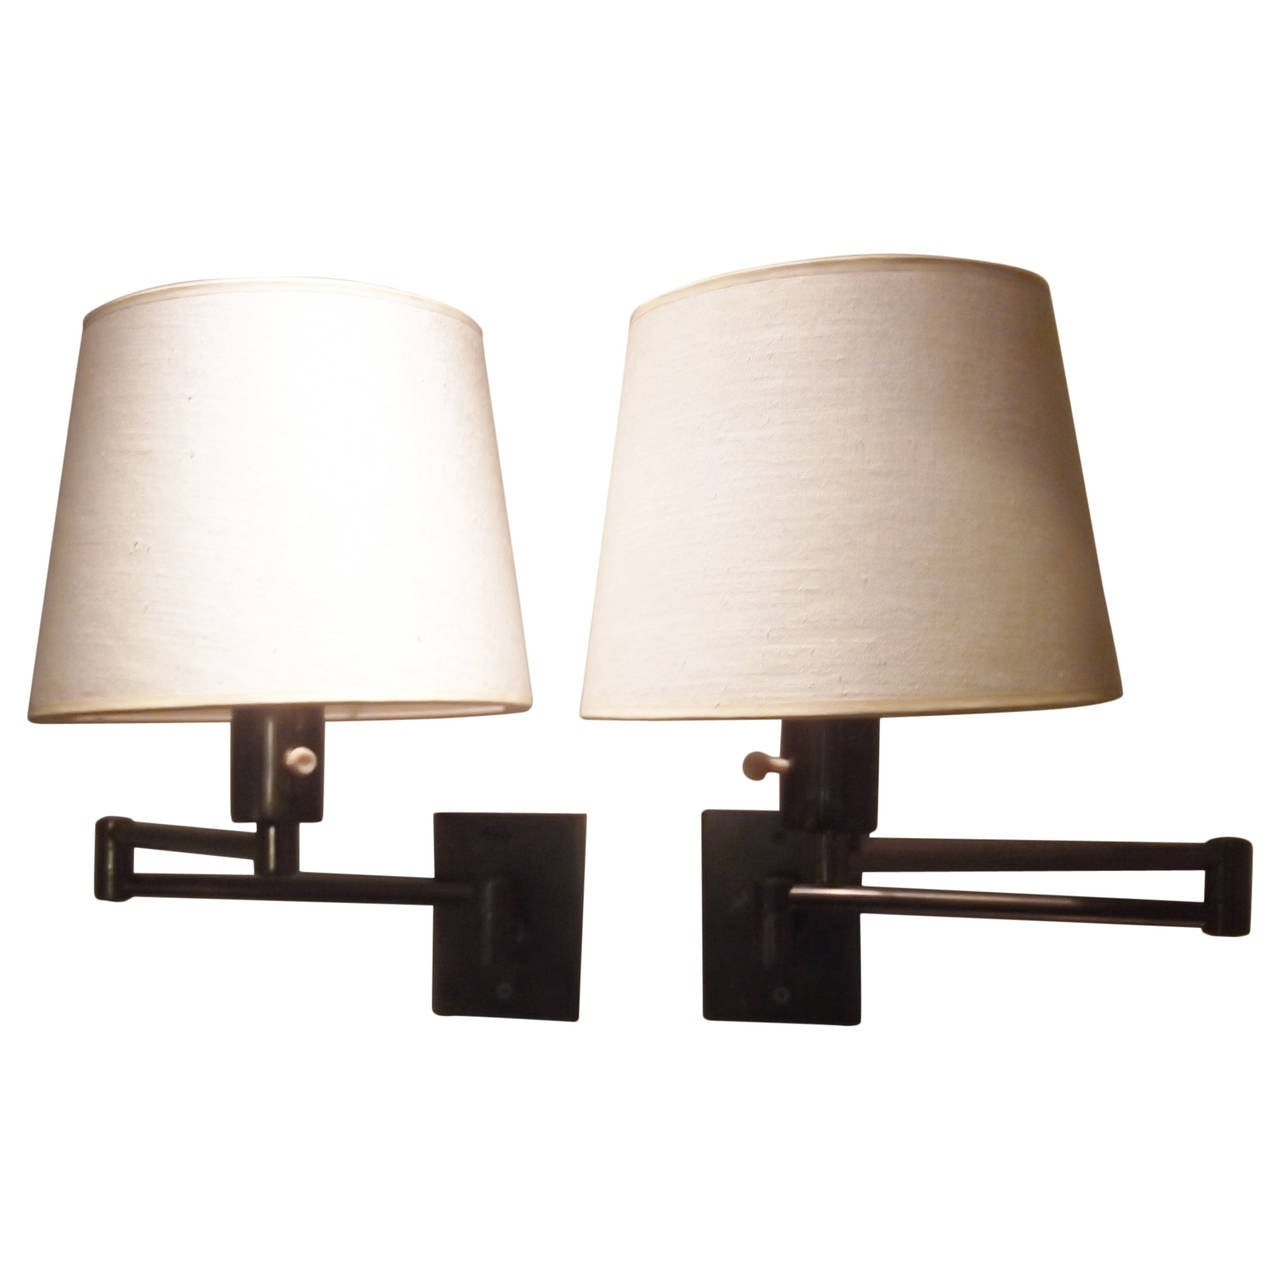 Wall Mounted Brass Lamps : Pair of Brass Mid Century Hansen Swing Arm Wall-Mounted Lamps at 1stdibs